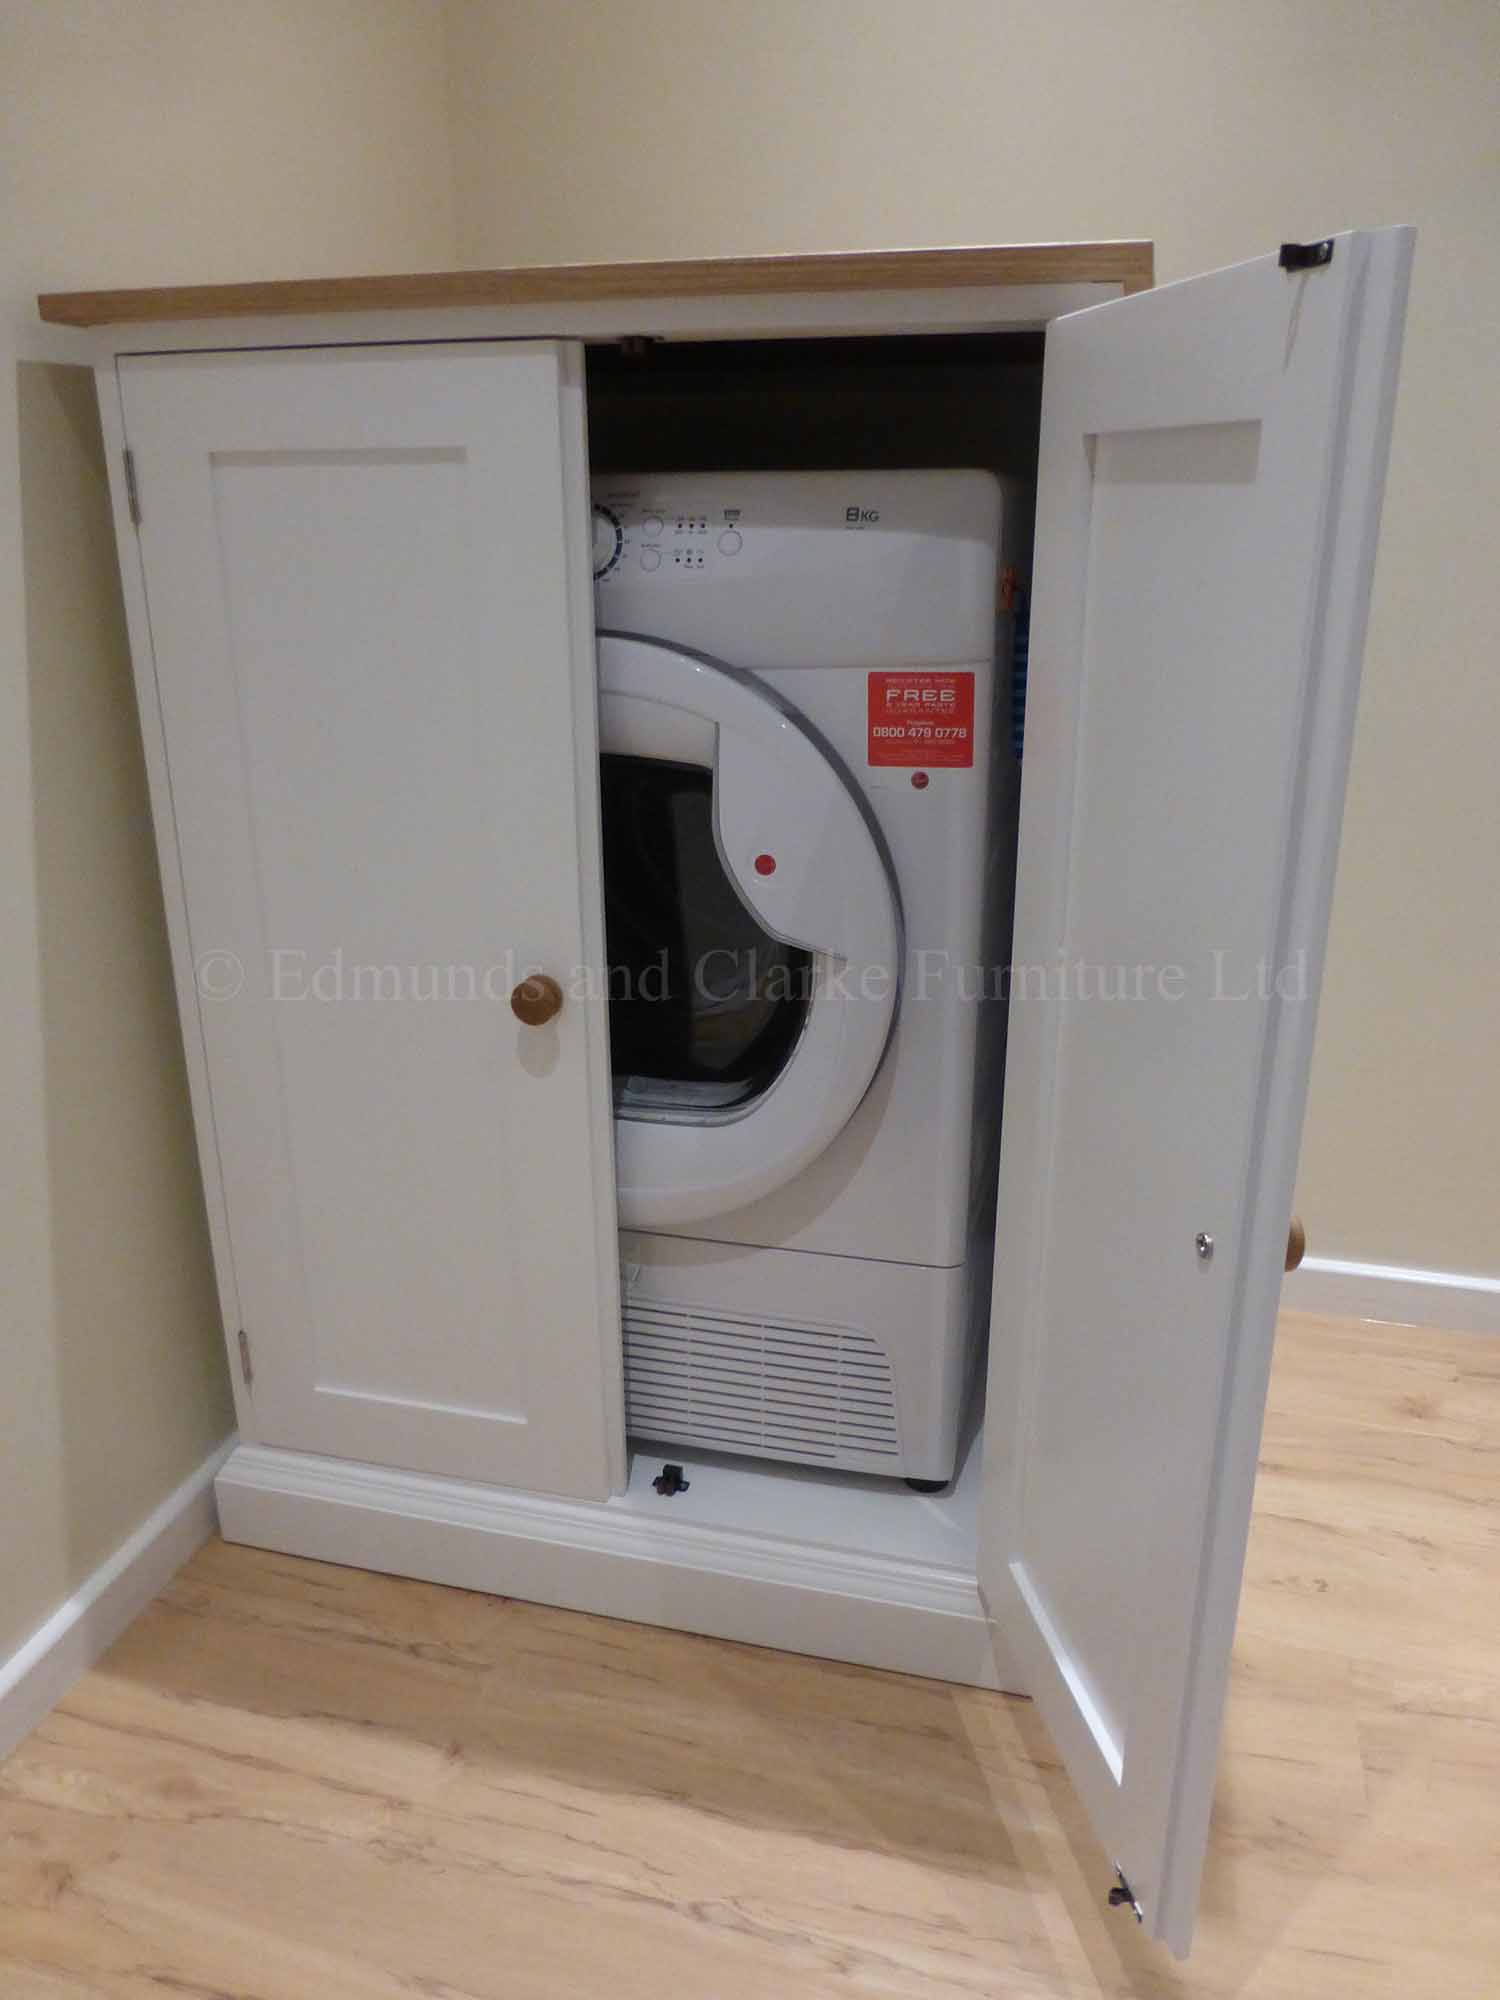 bespoke tumble dryer cupboard with two doors